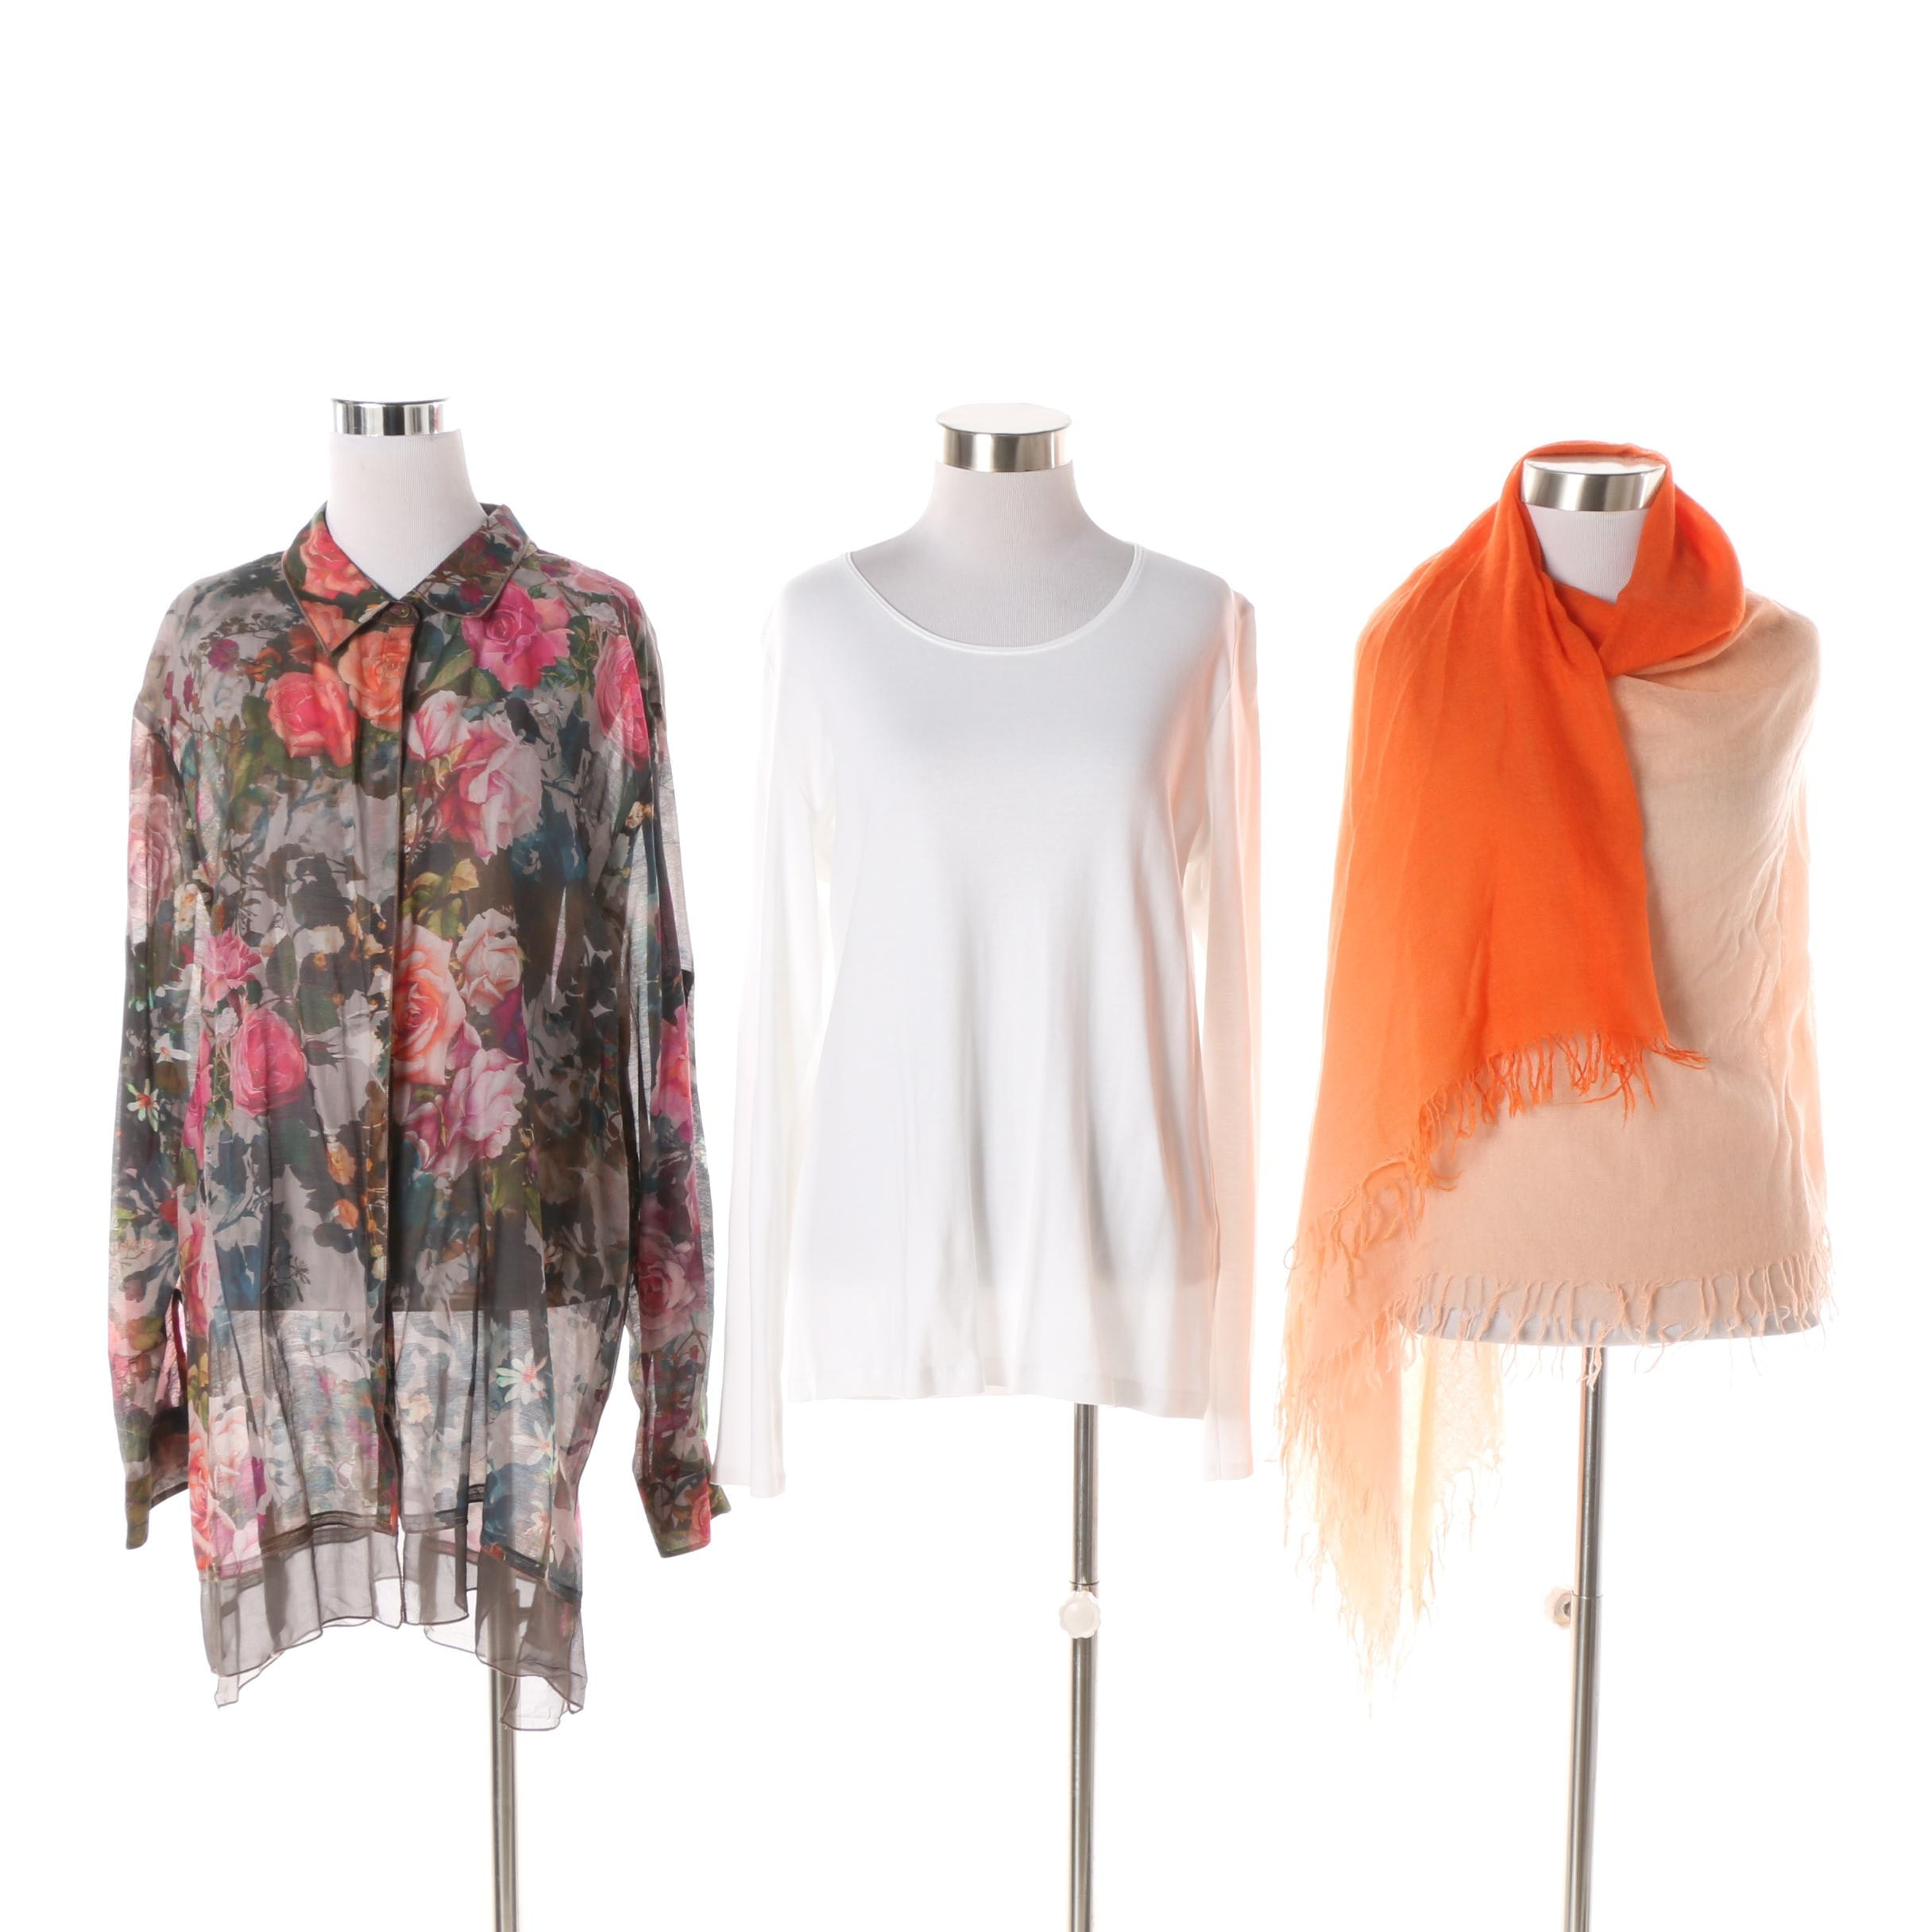 Women's 3J Workshop and J. Jill Tops with Chan Luu Scarf